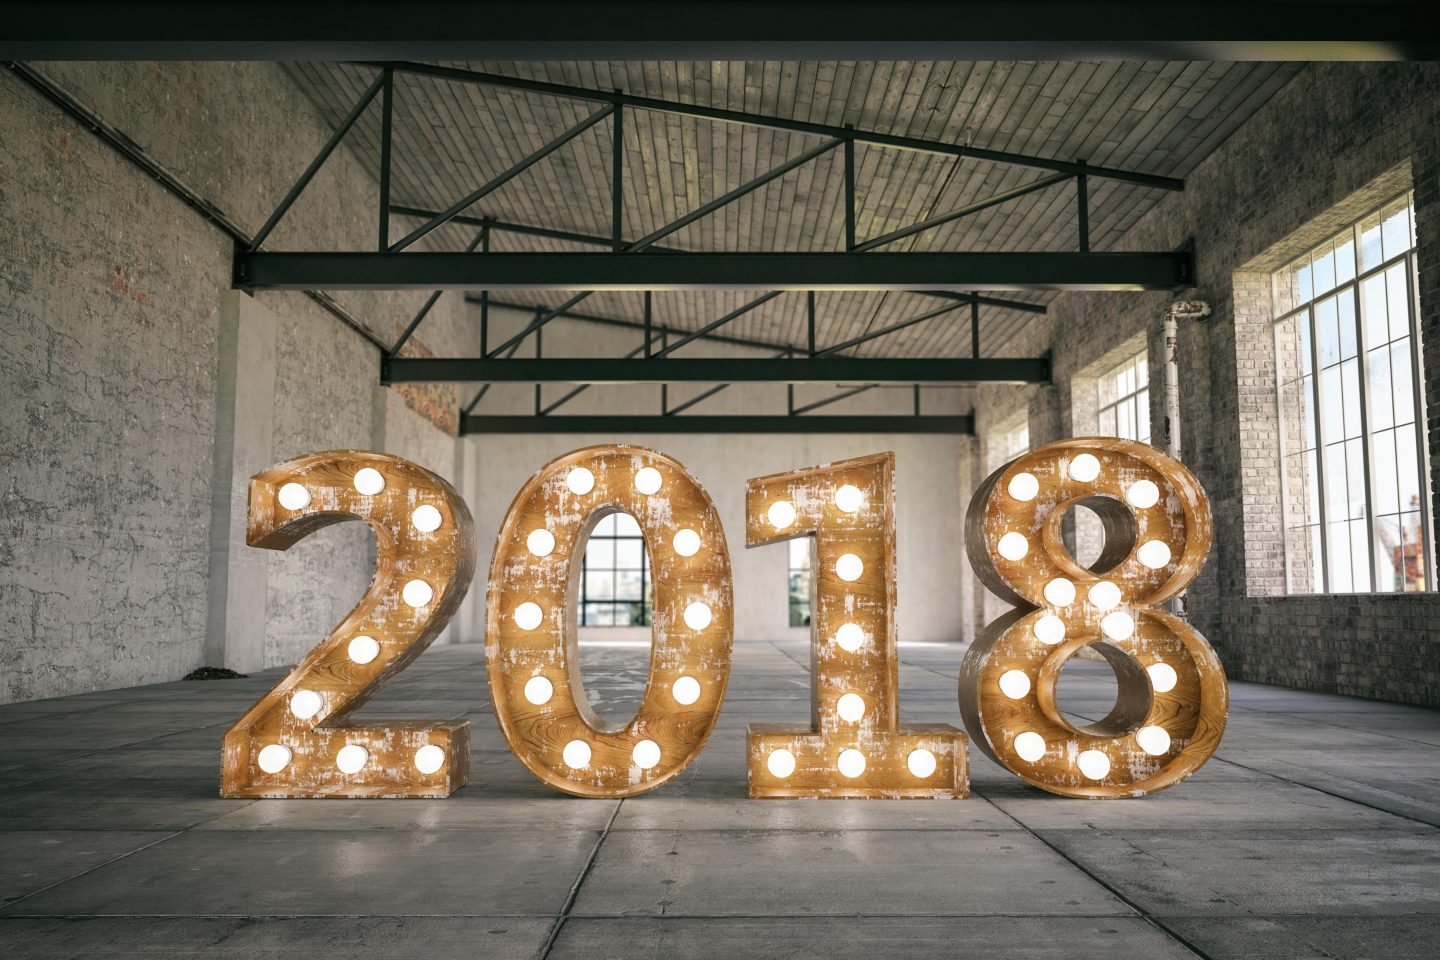 2018 Bulb Sign in Empty Warehouse, career planning tips for the new year, career, business, GamePlan A, self-improvement